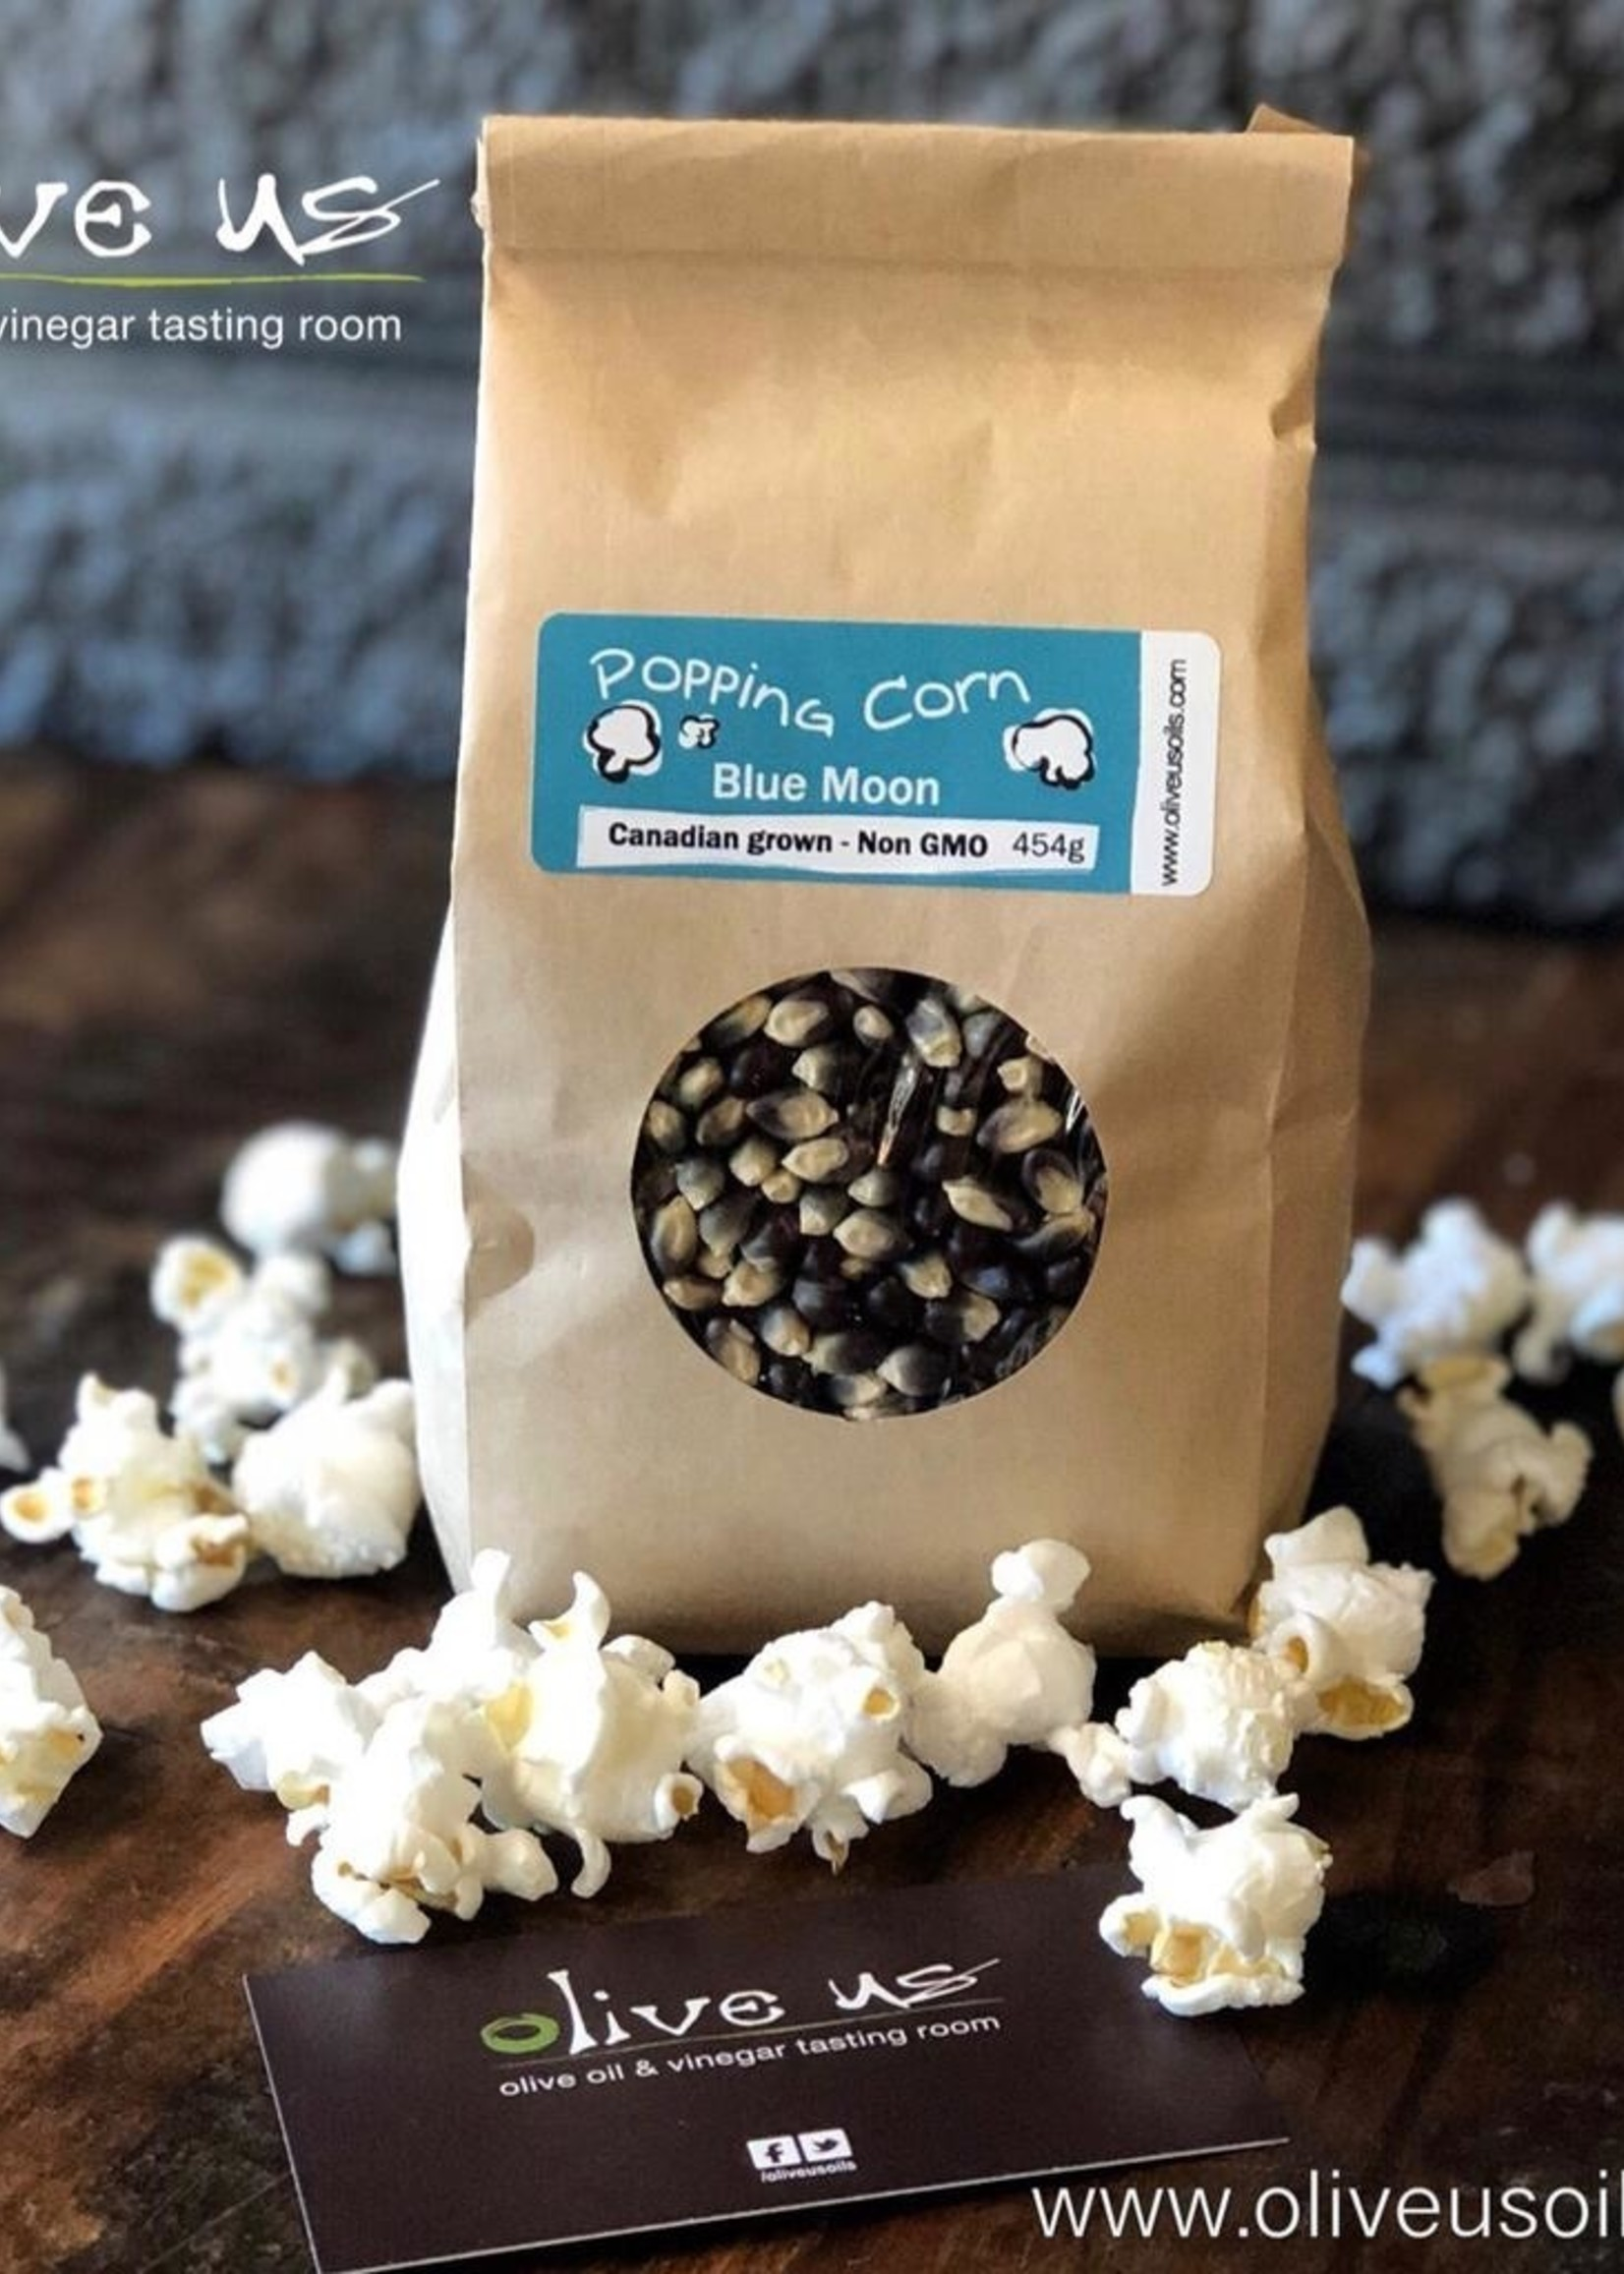 Olive Us Blue Moon Popping Corn 454g